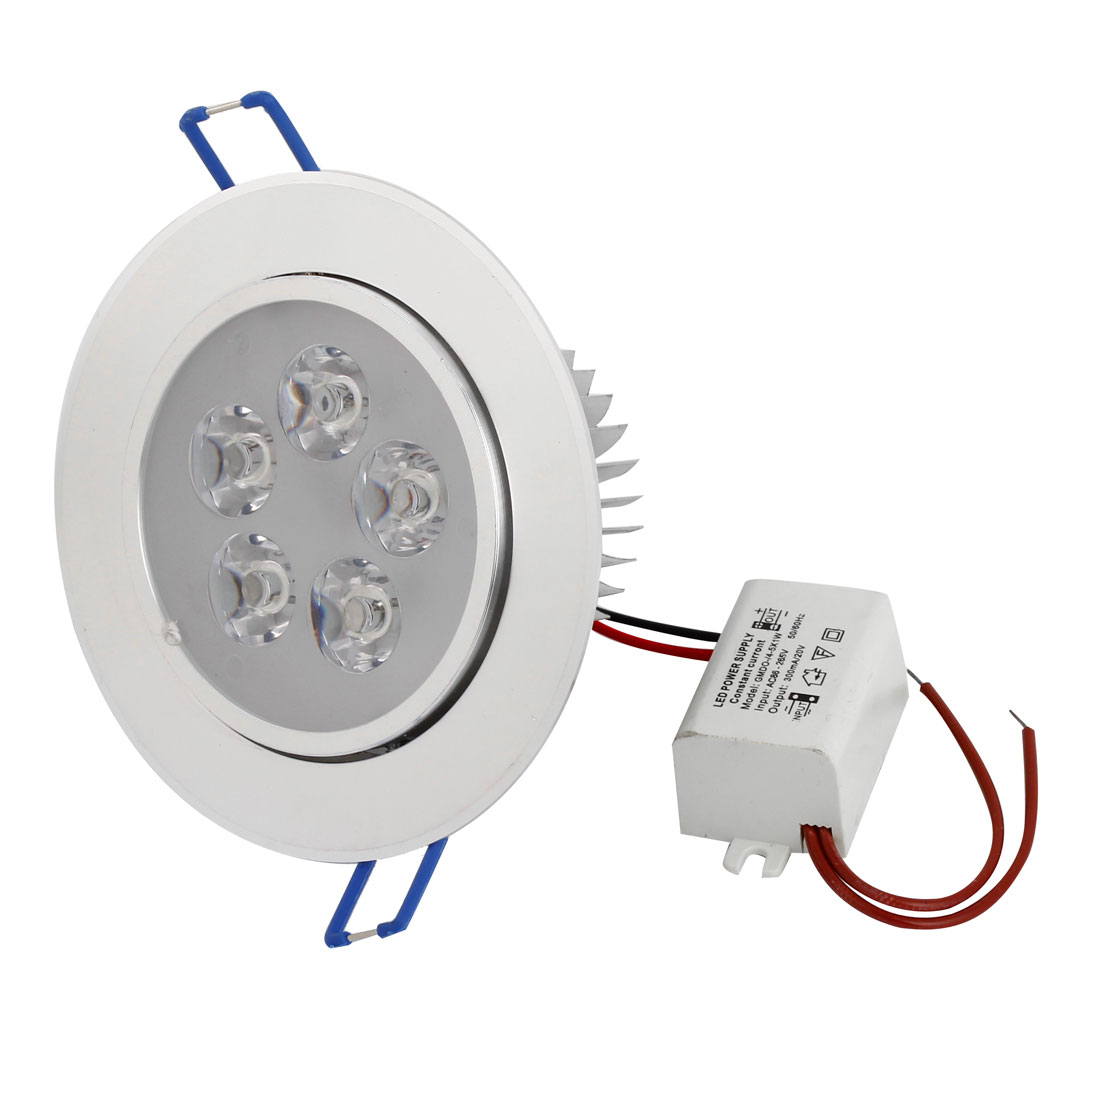 AC 220V 5x1W White LED Spot Recessed Ceiling Down Light Lamp w Power Driver